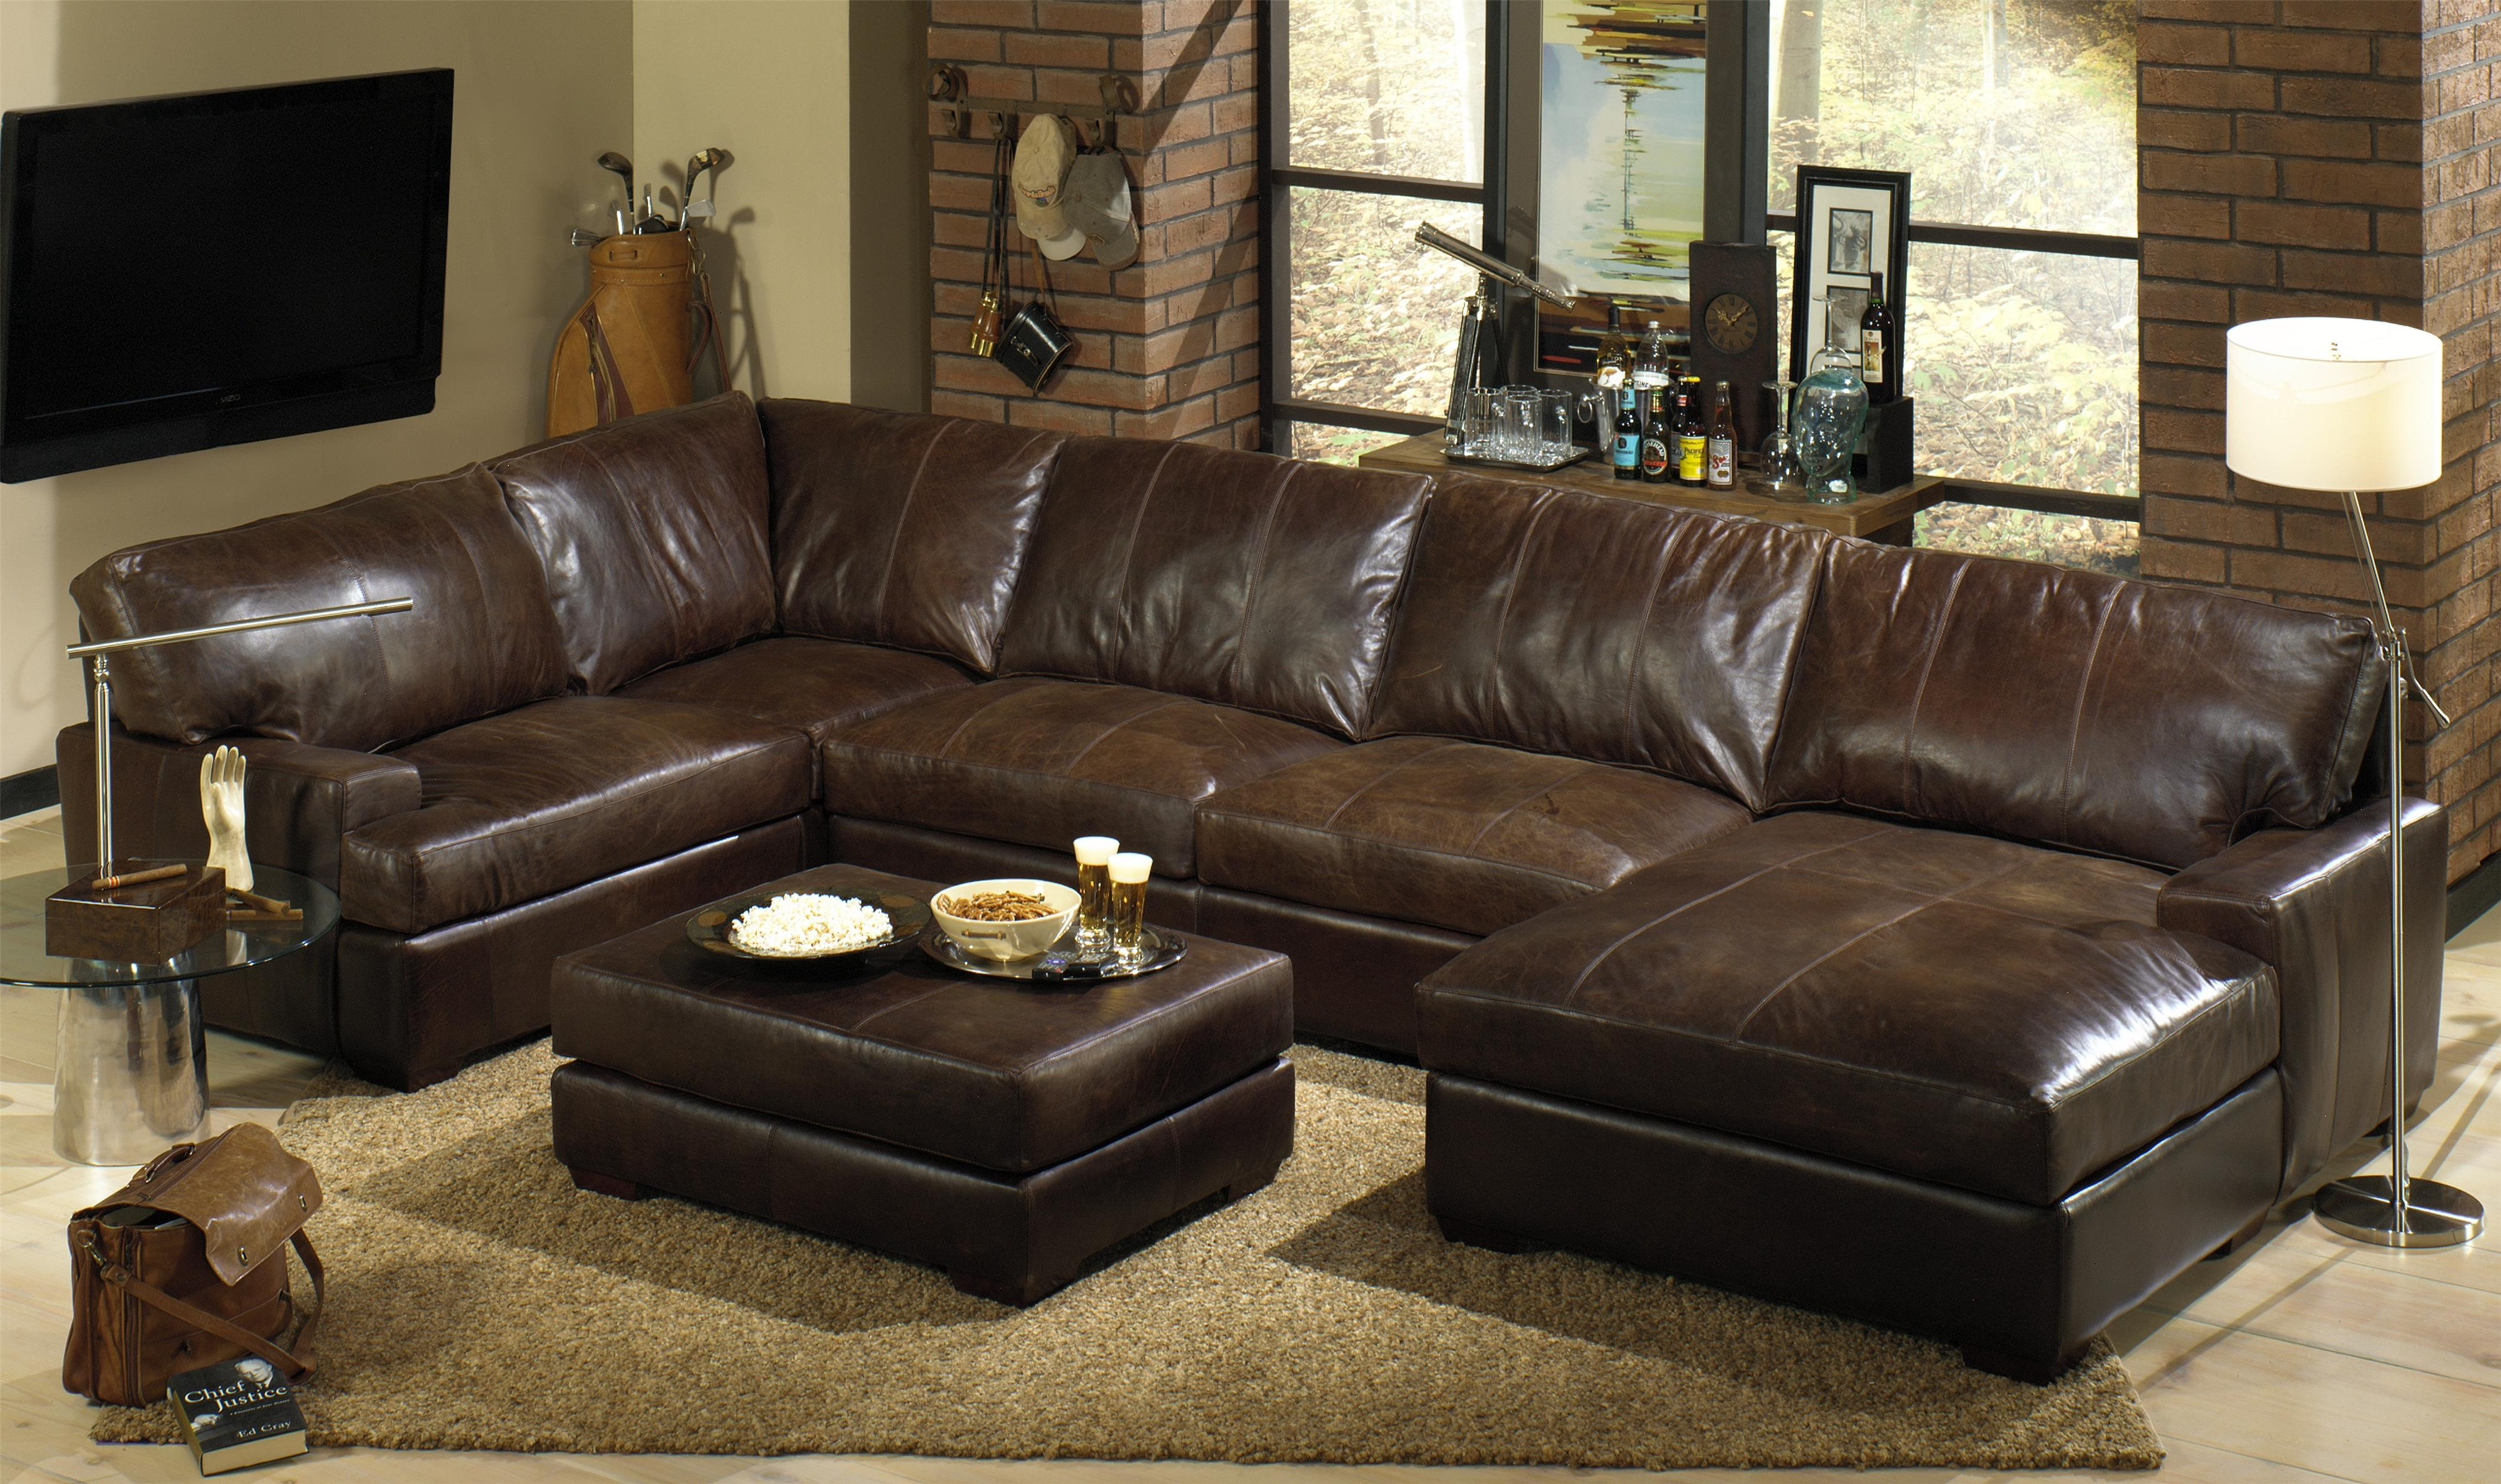 Great Front Room Furnishings For Living Room Ideas With Front Room Furnishings Outlet